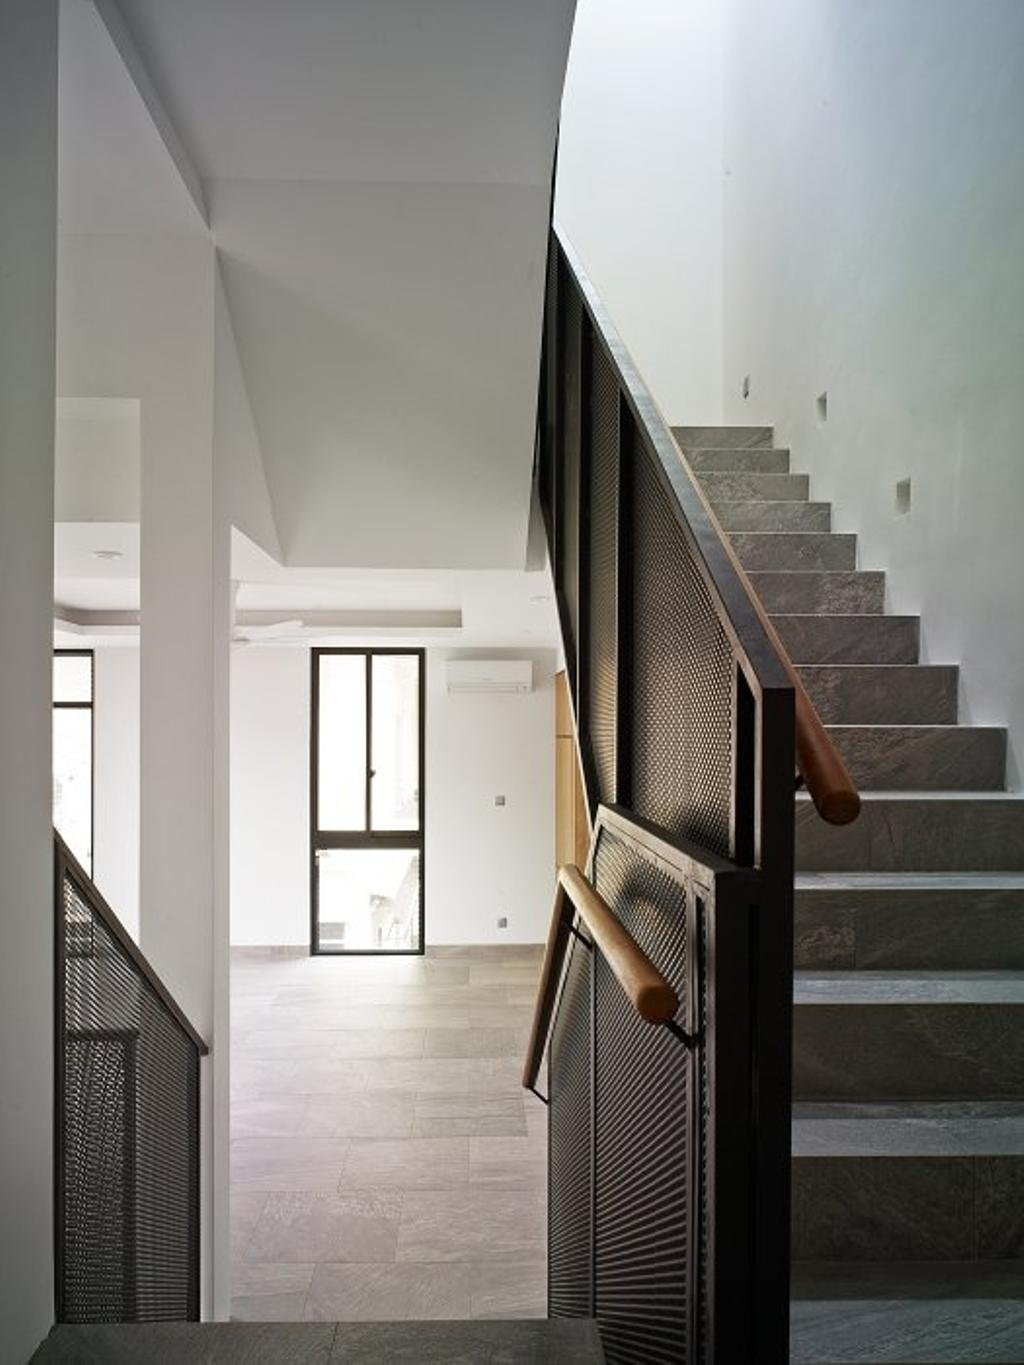 Minimalistic, Landed, House at JM, Architect, OWMF Architecture, HDB, Building, Housing, Indoors, Loft, White Board, Mirror, Chair, Furniture, Banister, Handrail